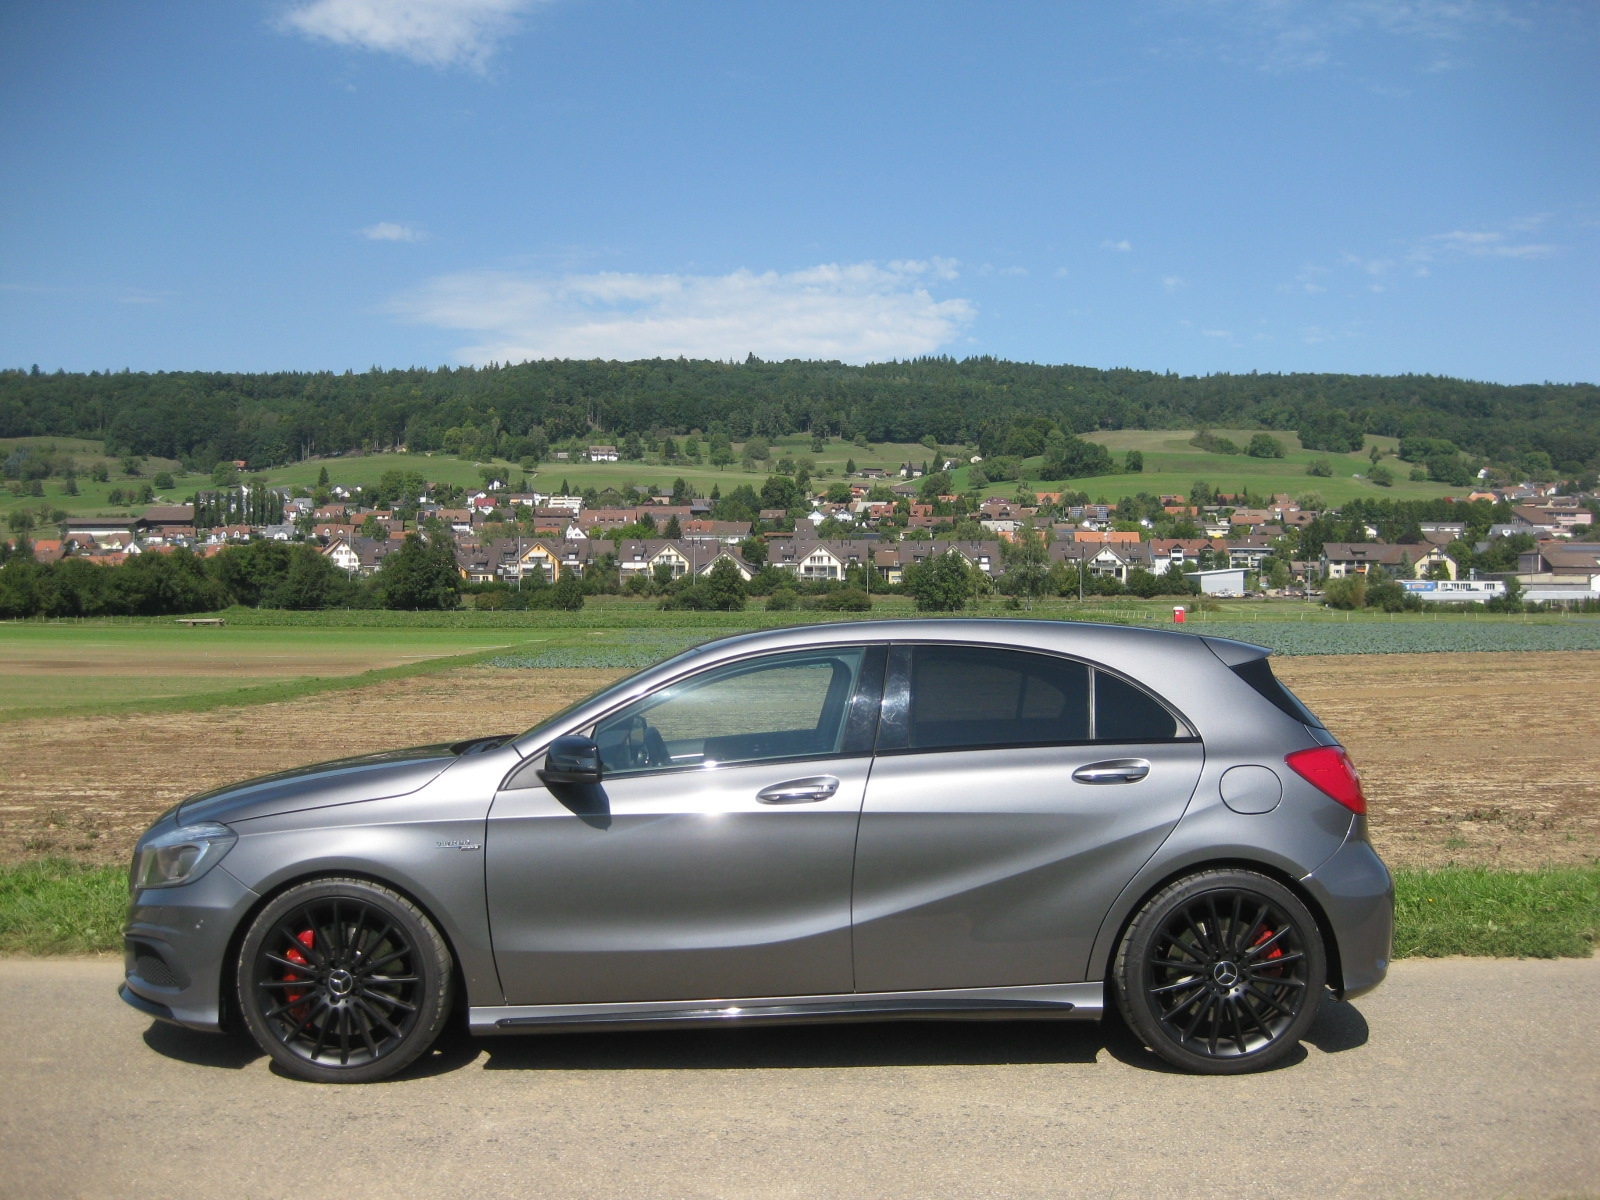 Touring garage ag mercedes benz a 45 amg 4matic for Mercedes benz a 45 amg 4matic